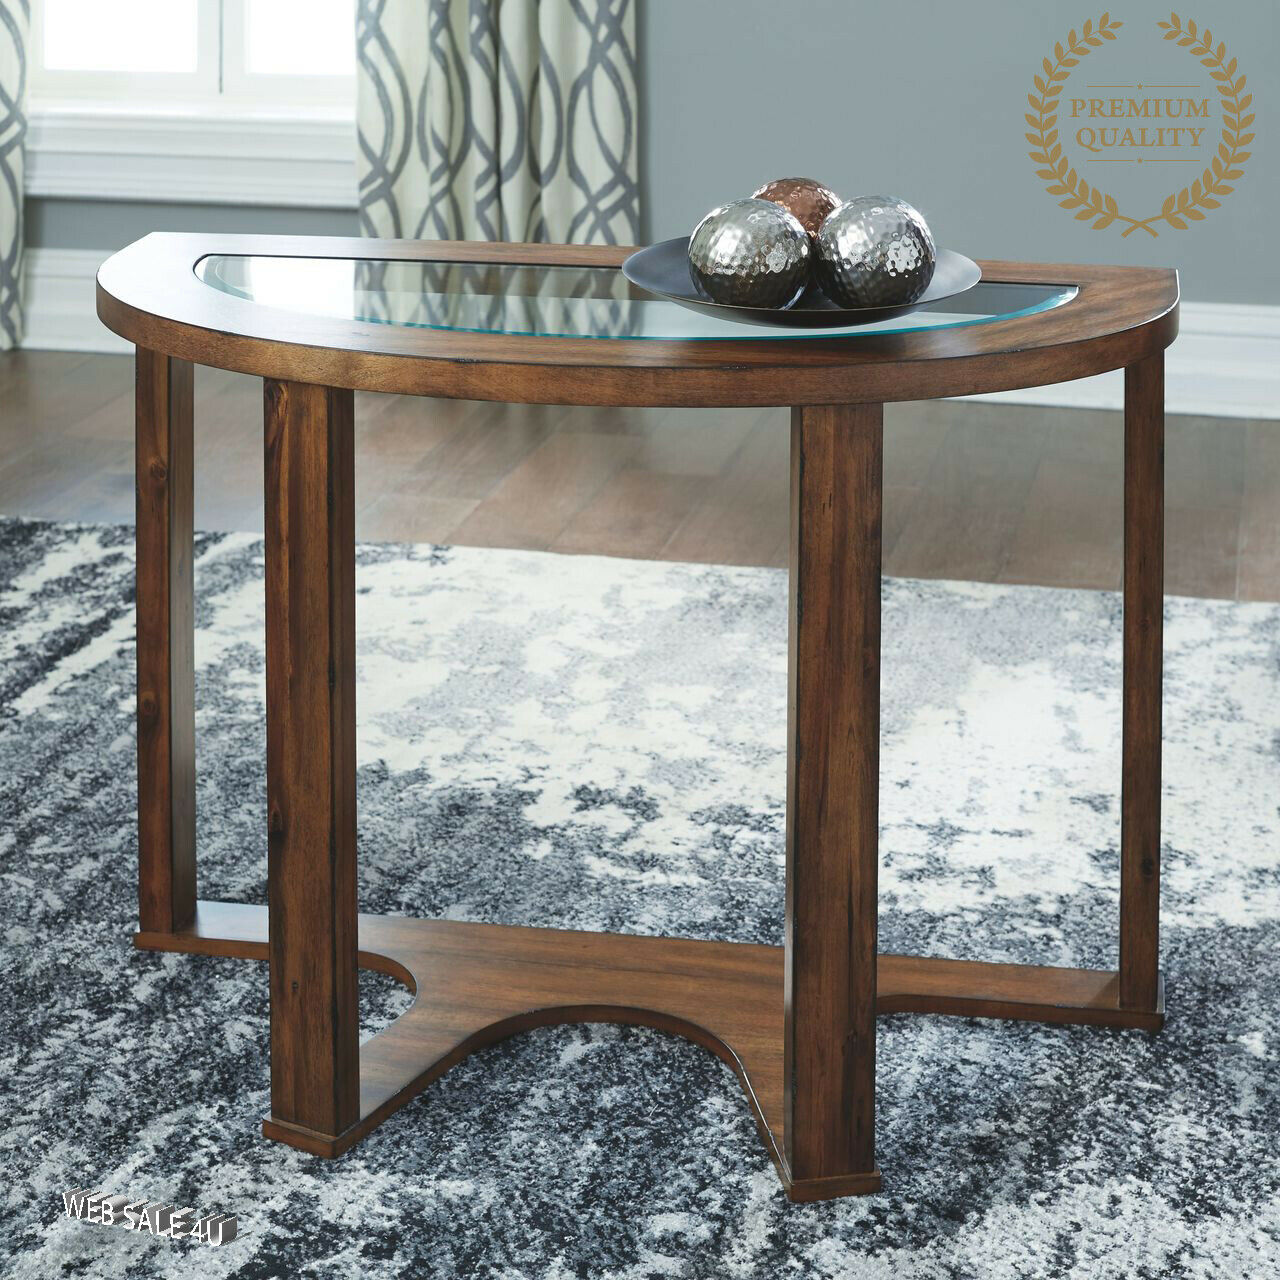 Picture of: Brown 2 Shelf Console Table Semi Circle Hall Entry Way Furniture Sofa Accent For Sale Online Ebay